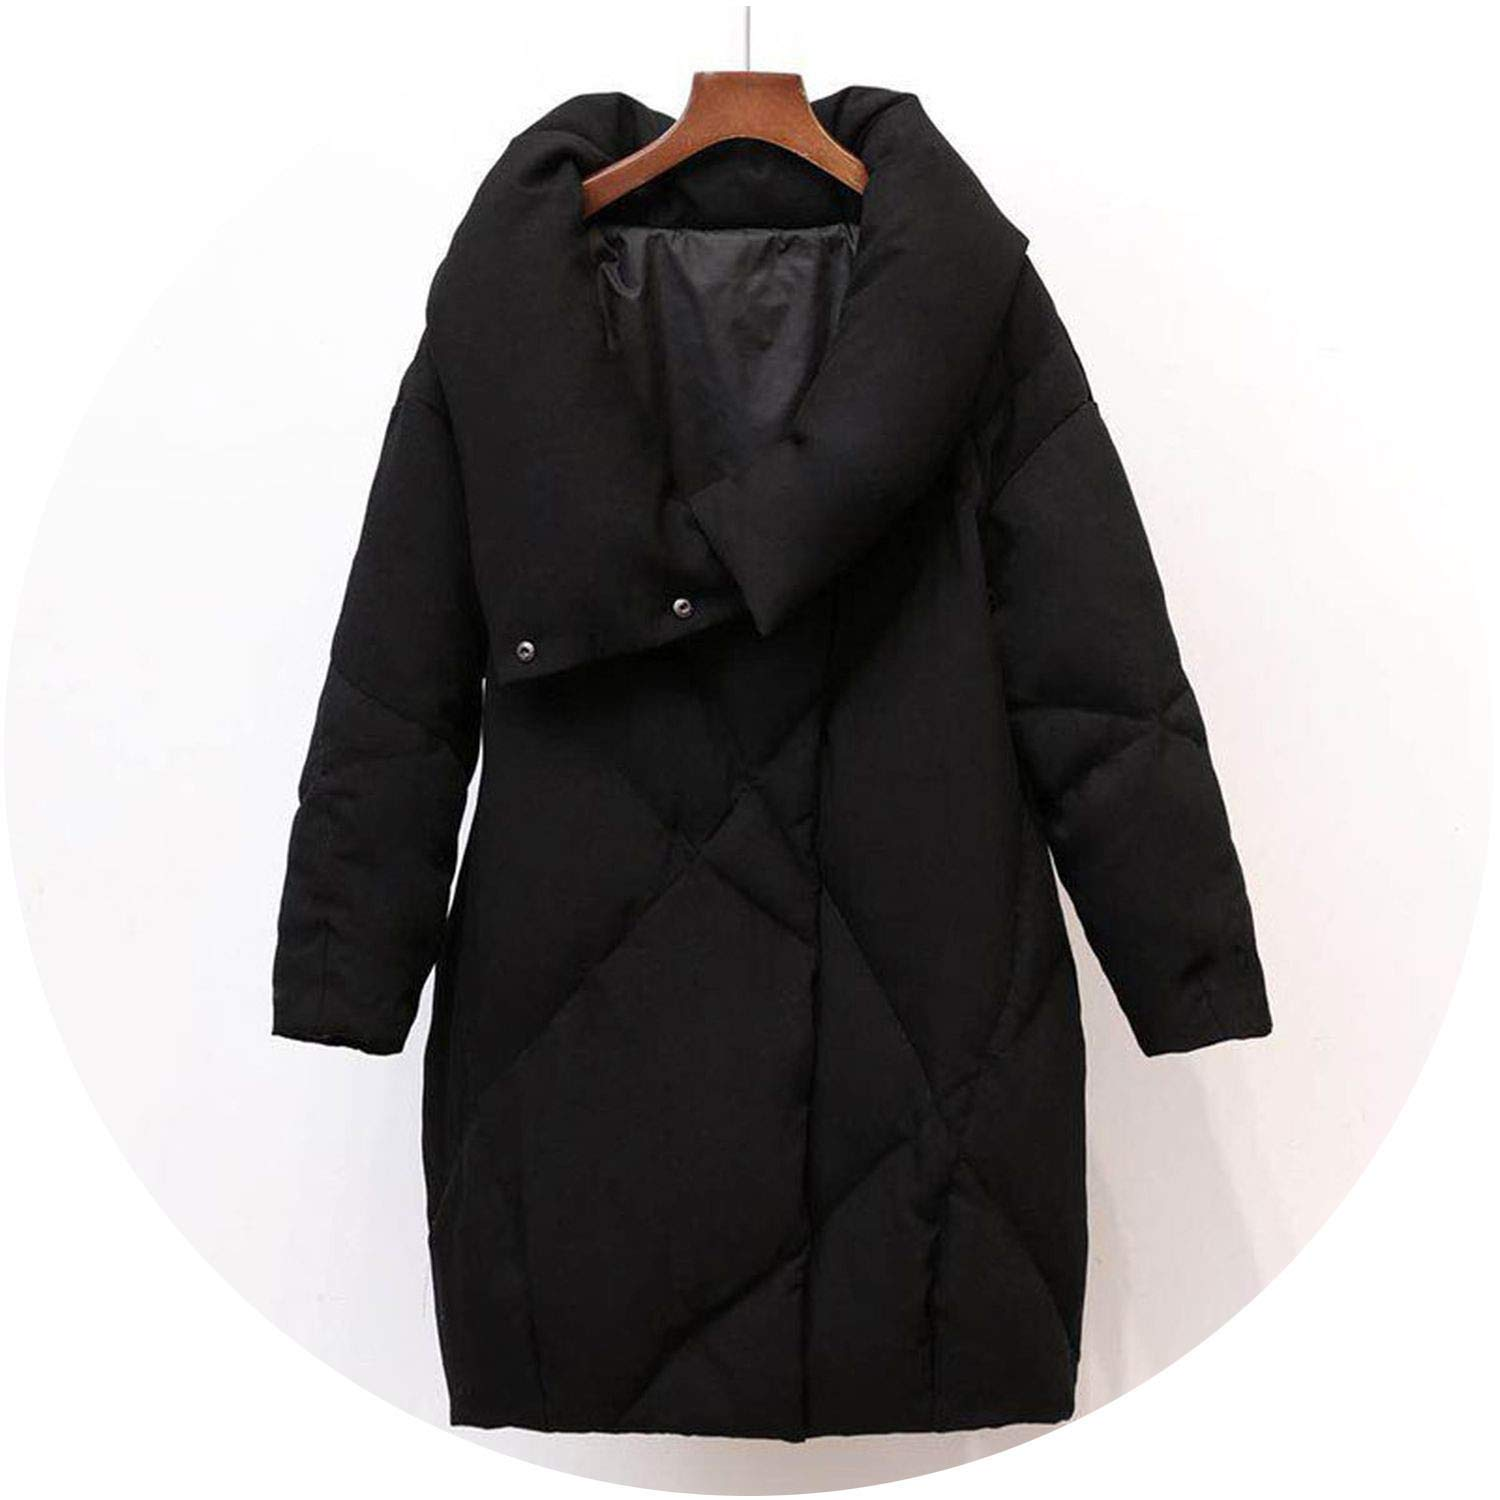 Black Talk about heaven Duck Down Coat Women Winter Clothing 2018 Female Jacket Knee Length Vintage Down Jacket